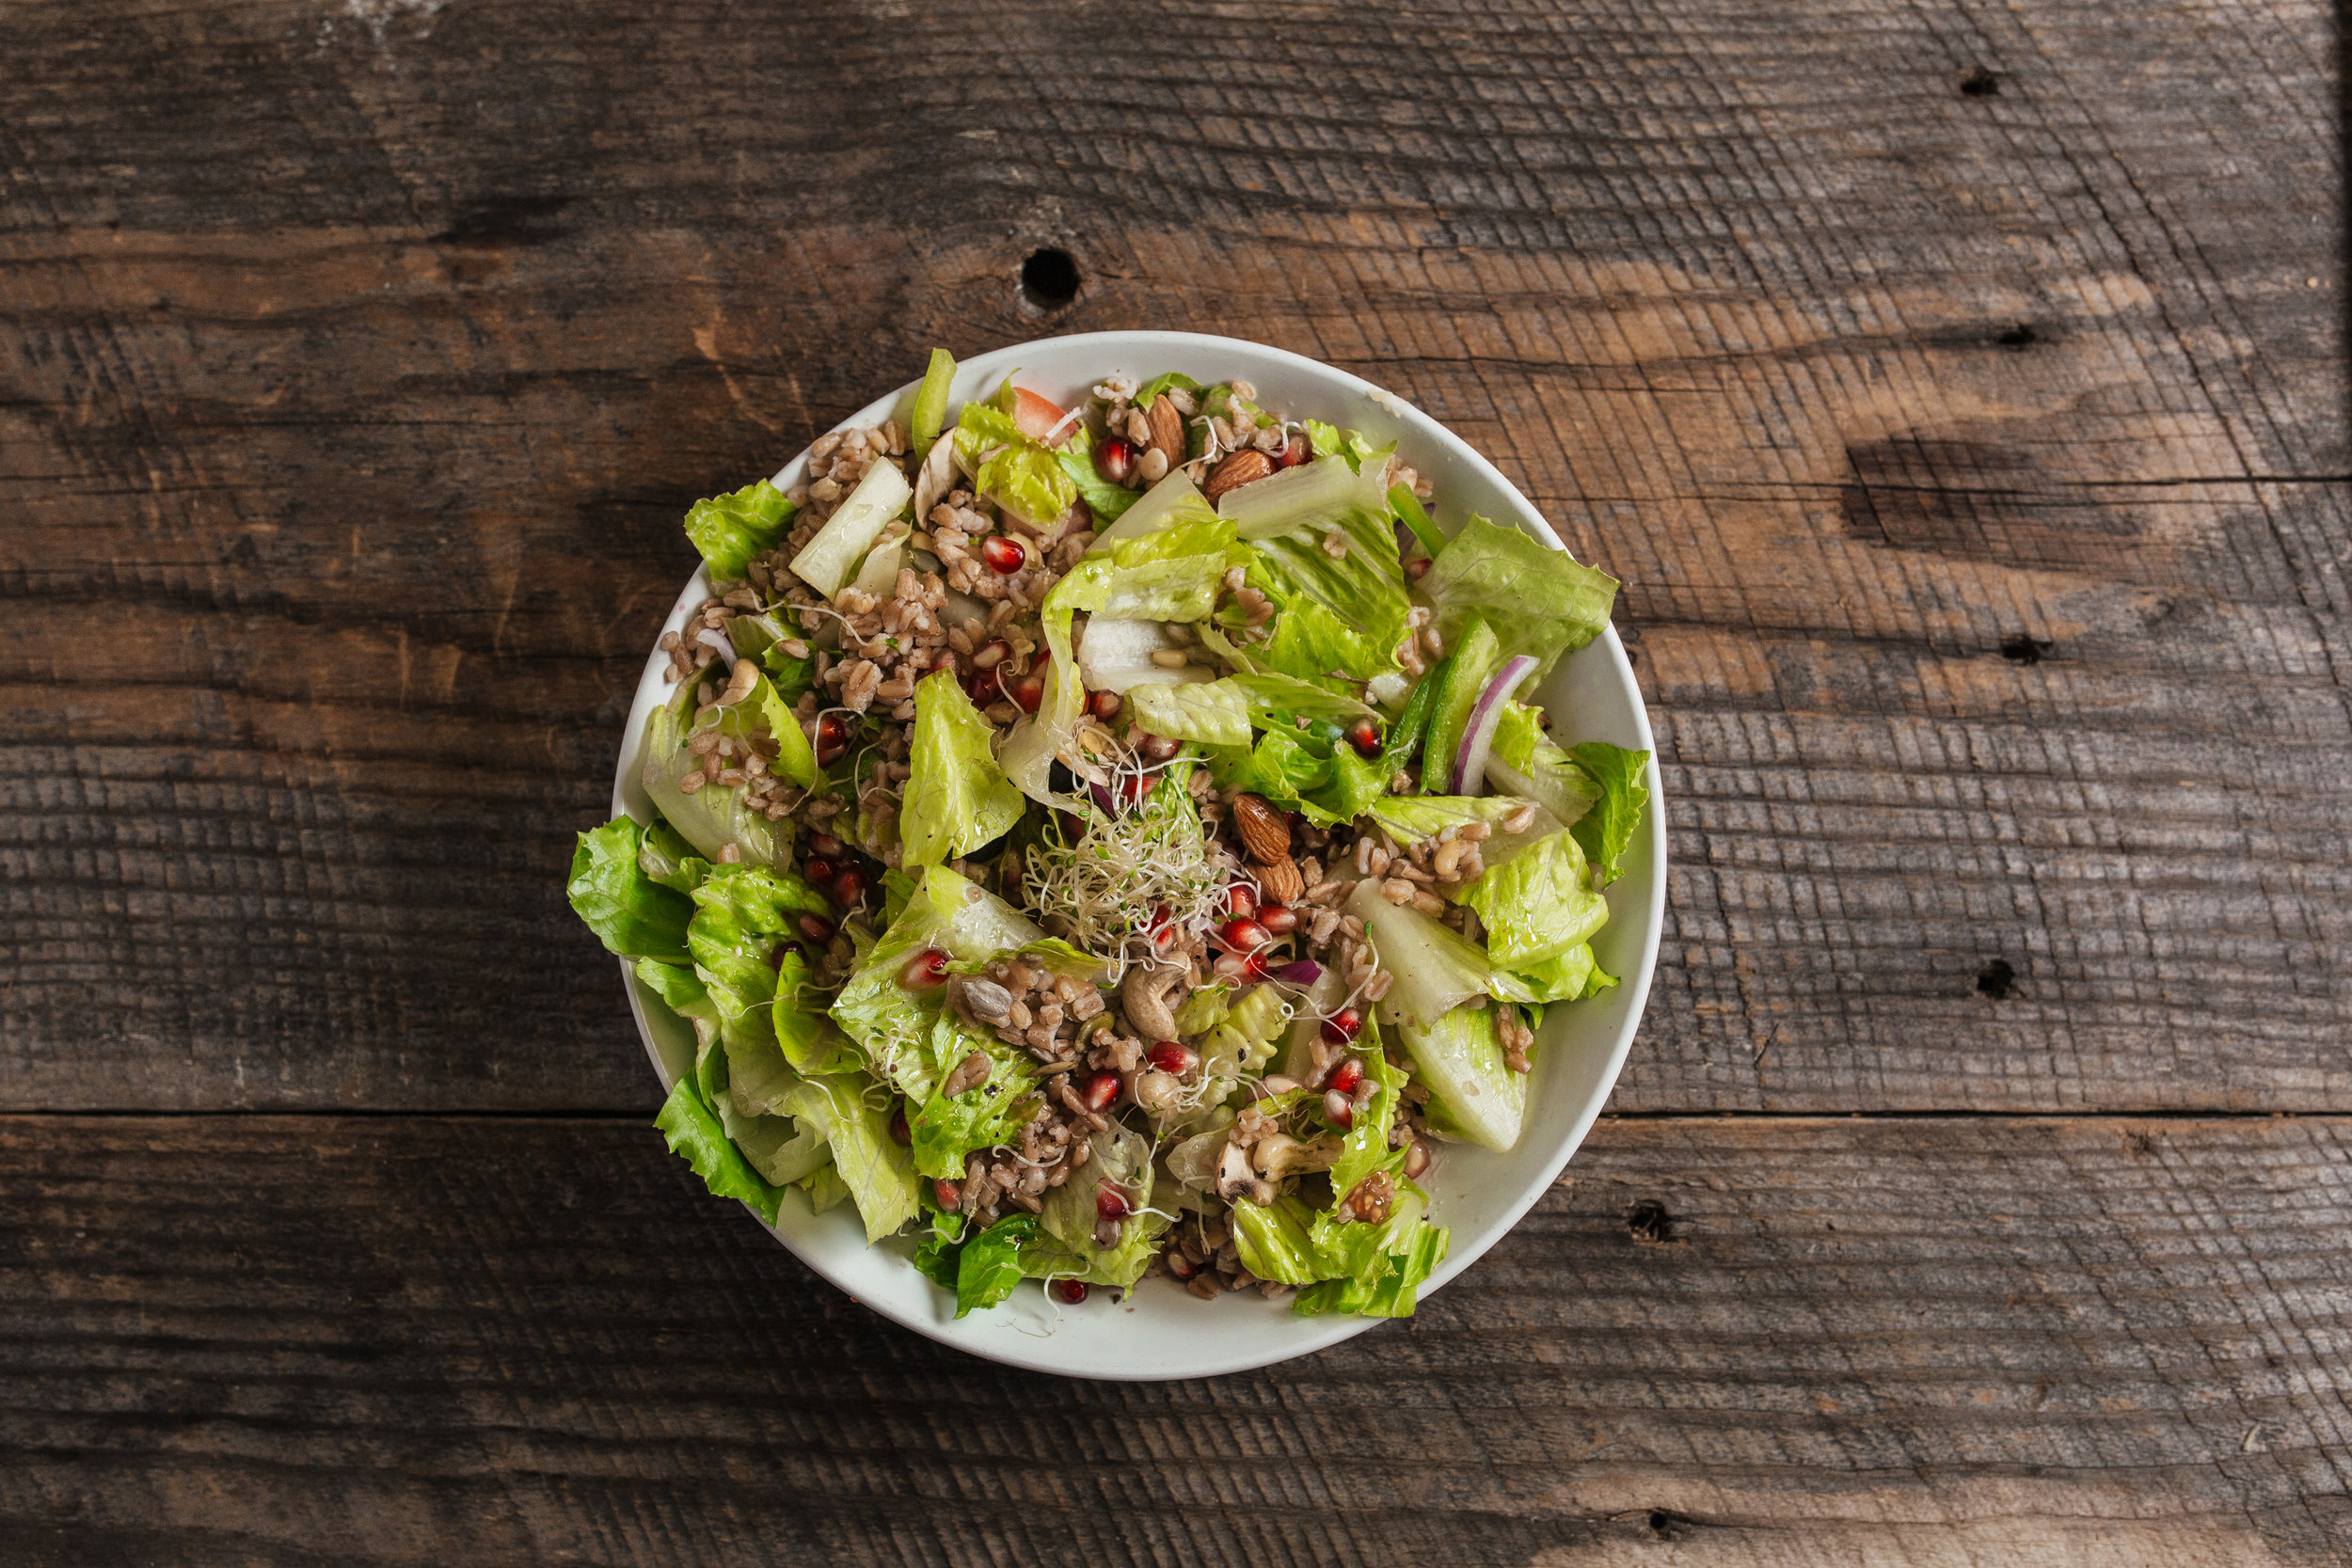 Healthy farro salad vegan recipe plant based pomegranate and seeds sprourts